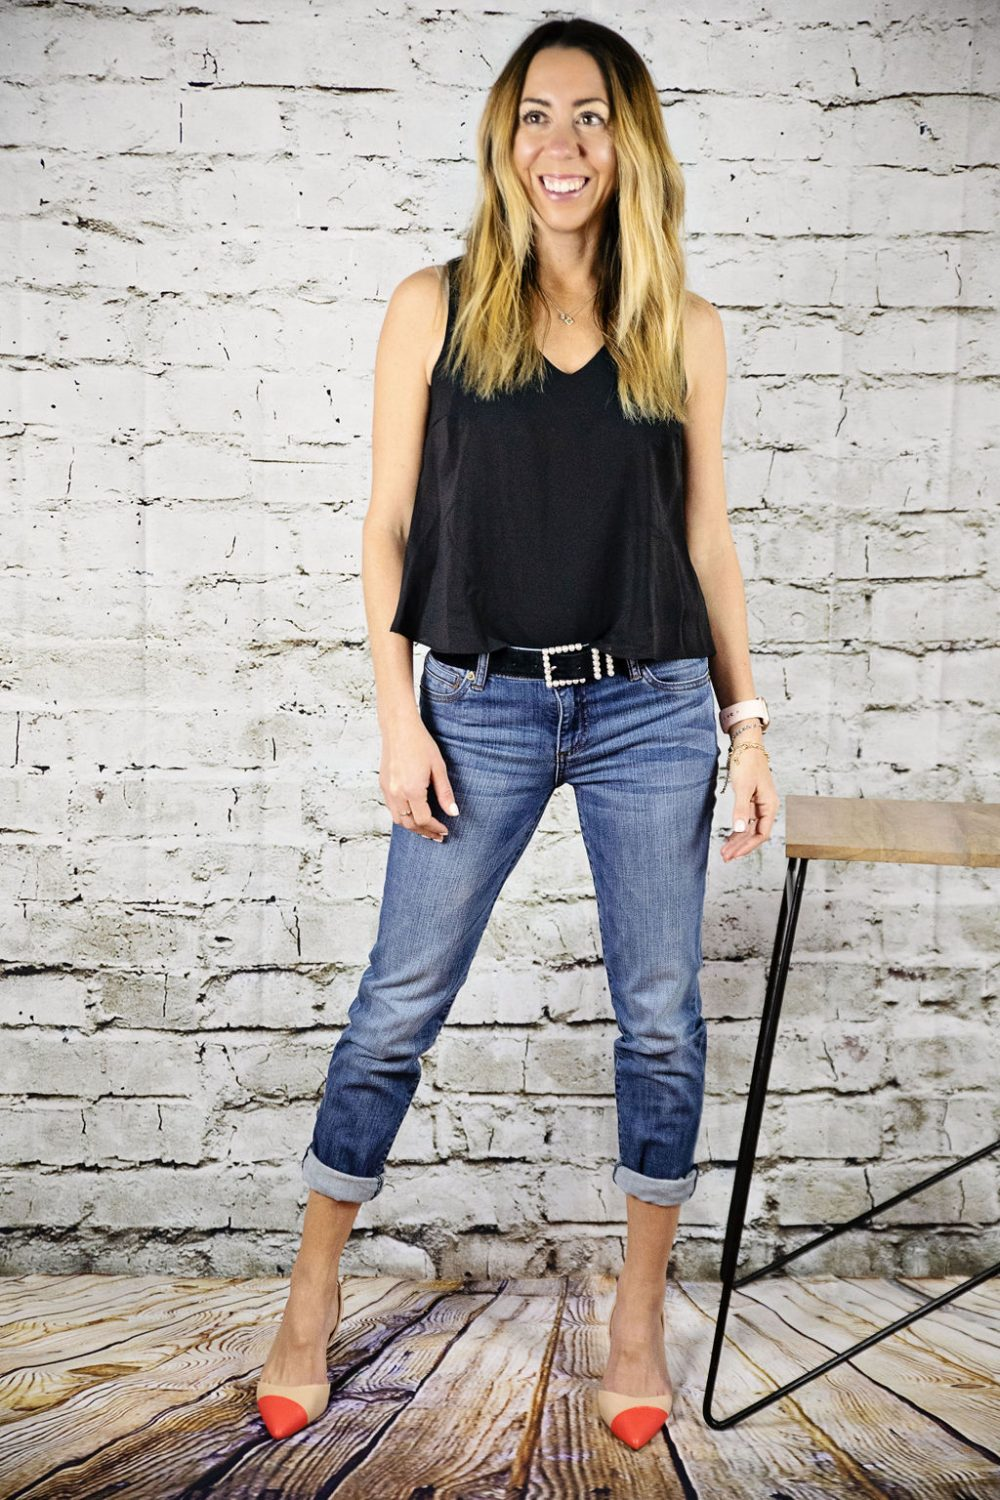 The motherchic wearing Kut from the Kloth boyfriend jeans and Vince camuto slingback heels